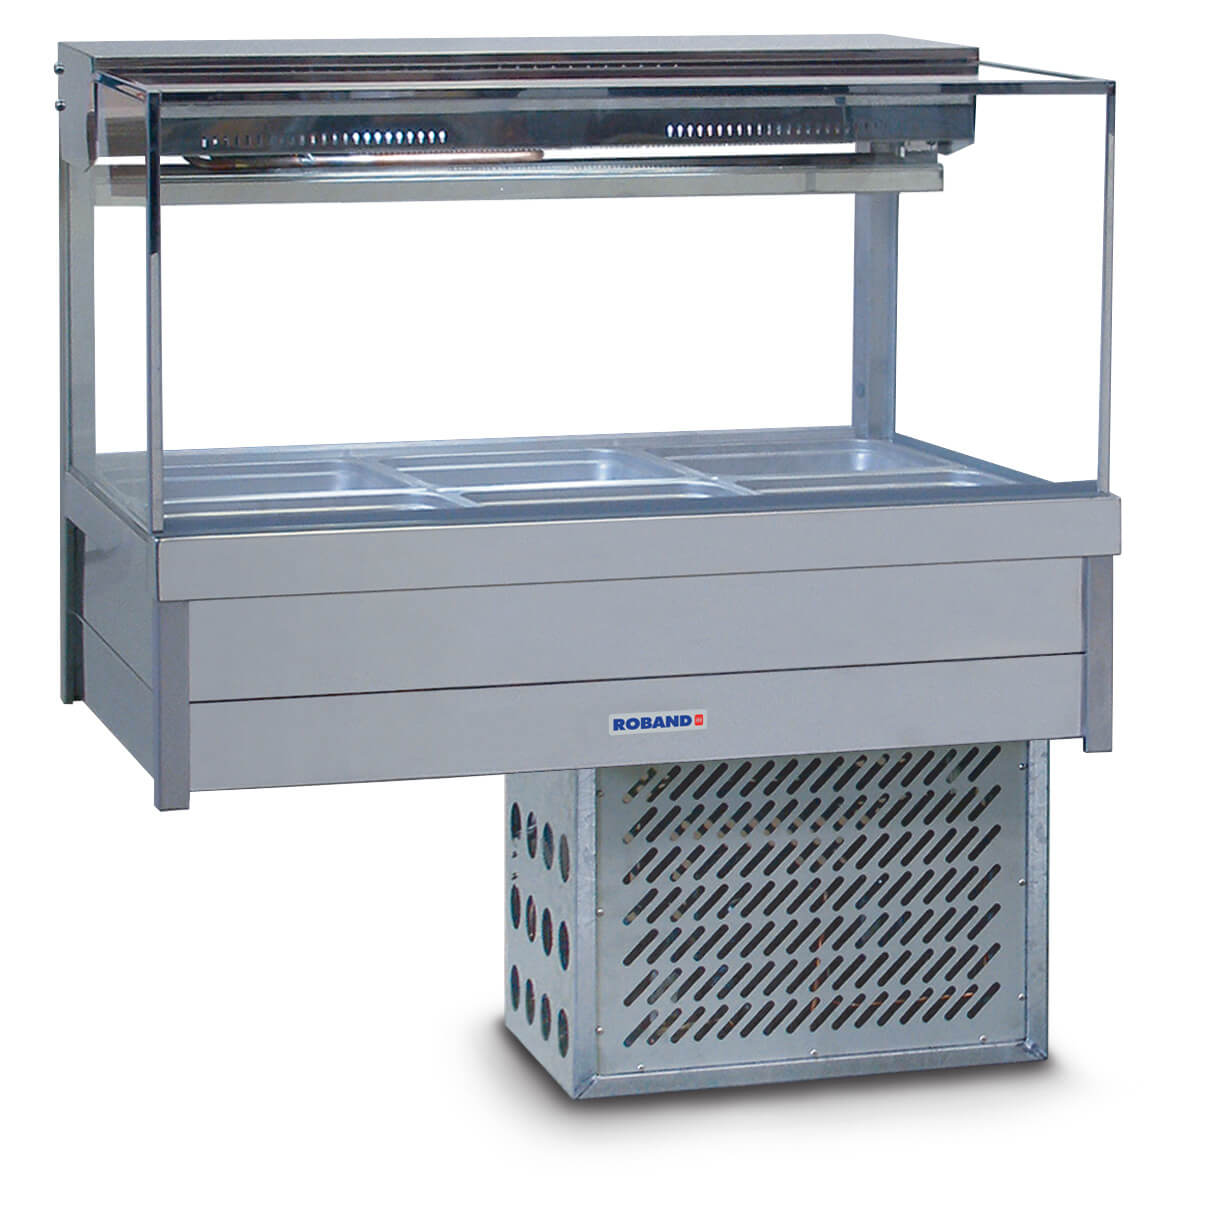 Roband Square Glass Refrigerated Display Bar – Piped and Foamed only (no motor), 6 pans